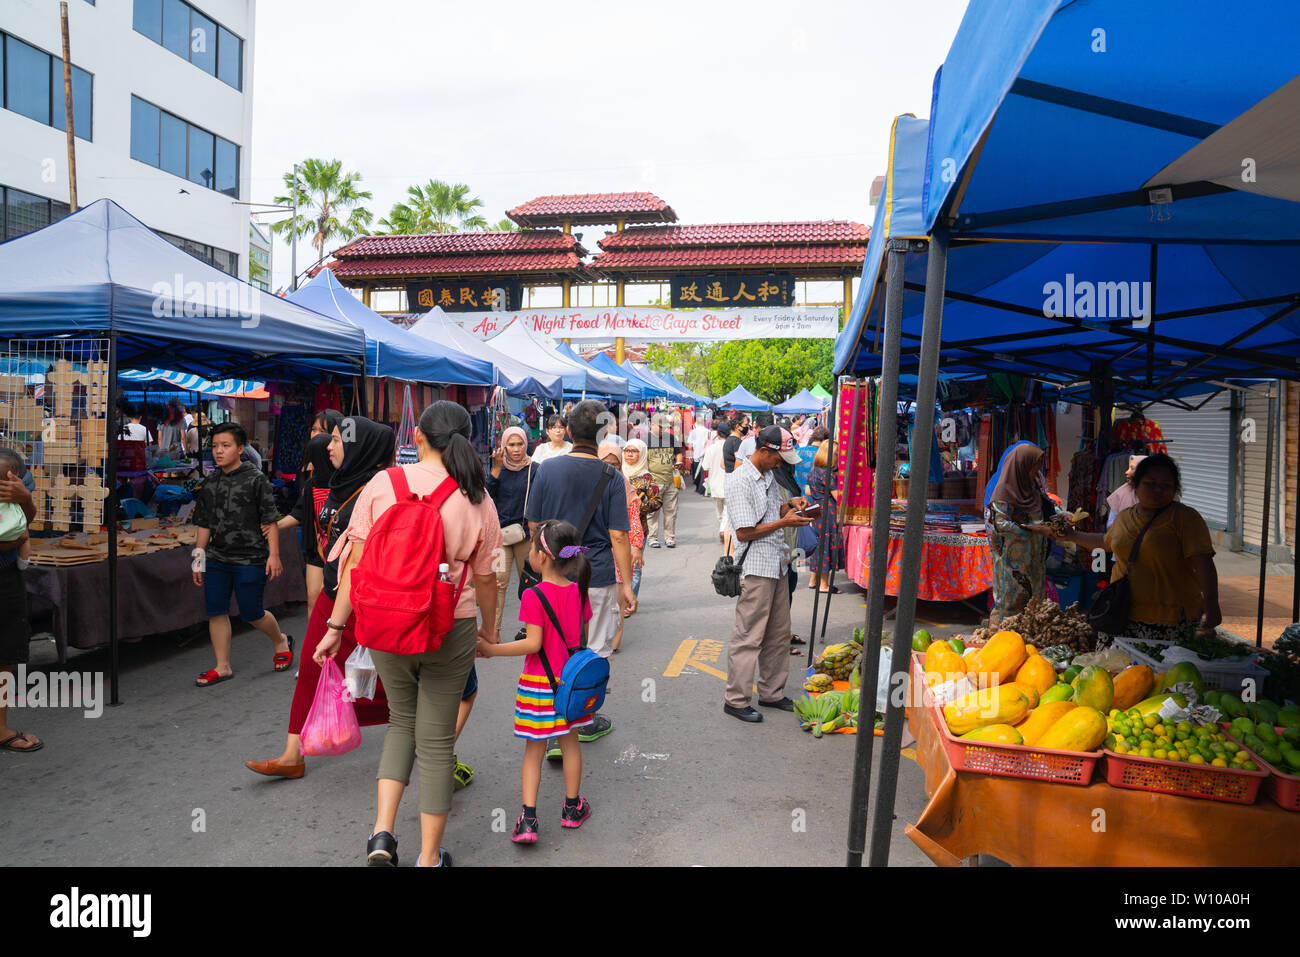 KOTA KINABULU, BORNEO - JUNE 2  PACKS PRODUCT FOR CUSTOMER.  Kota Kinabalu Gaya Street Sunday market  people throng between the stalls and vendors. - Stock Image